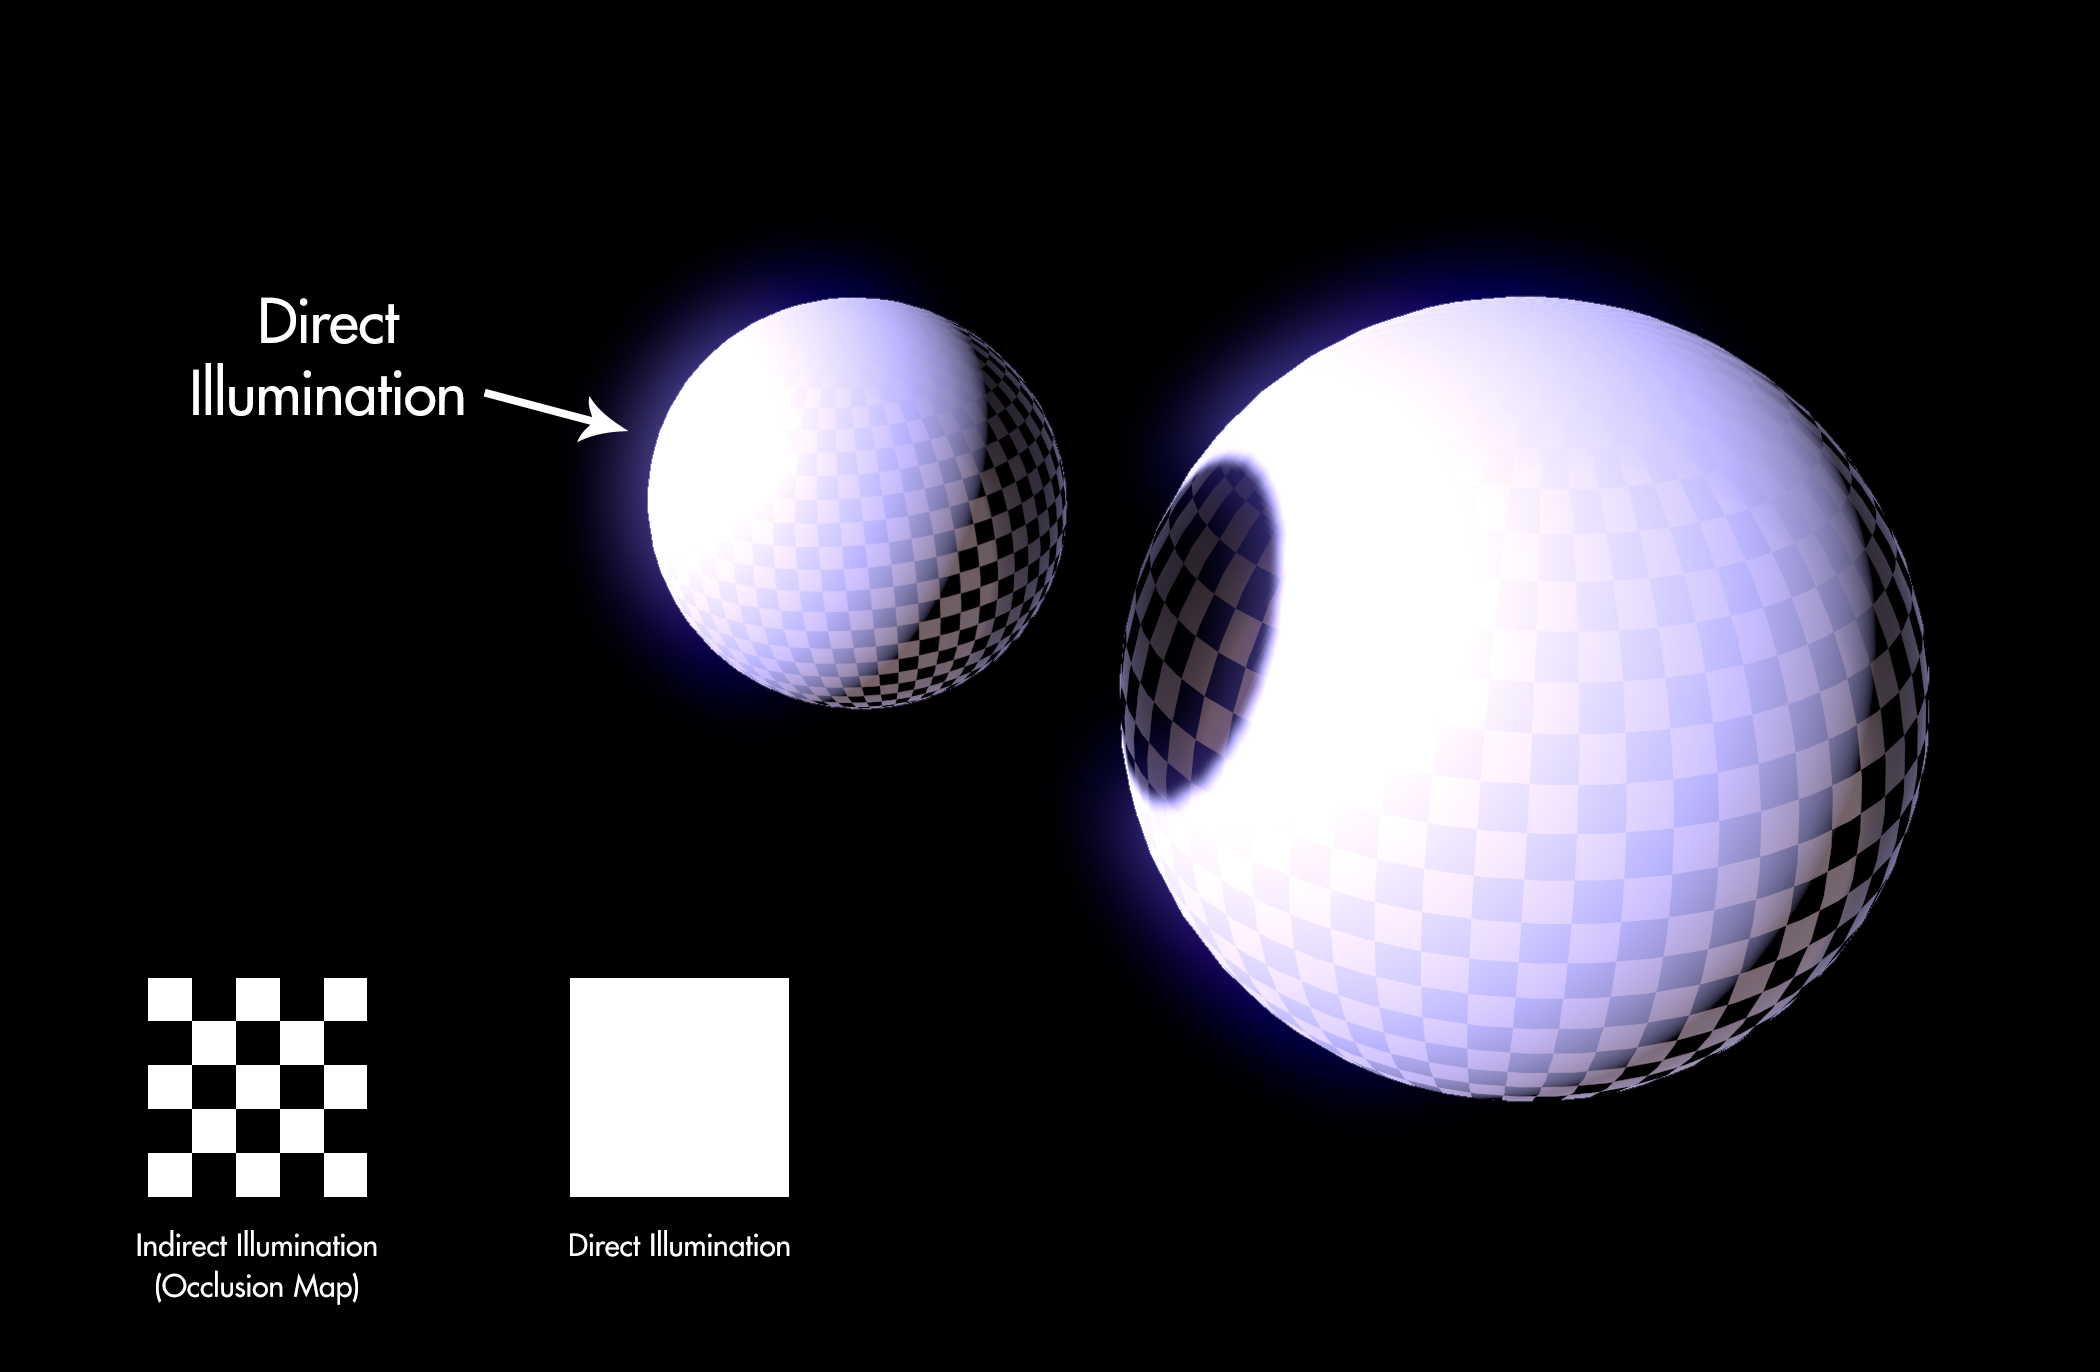 Occlusion information is revealed as Direct Illumination falls off the curved surface.